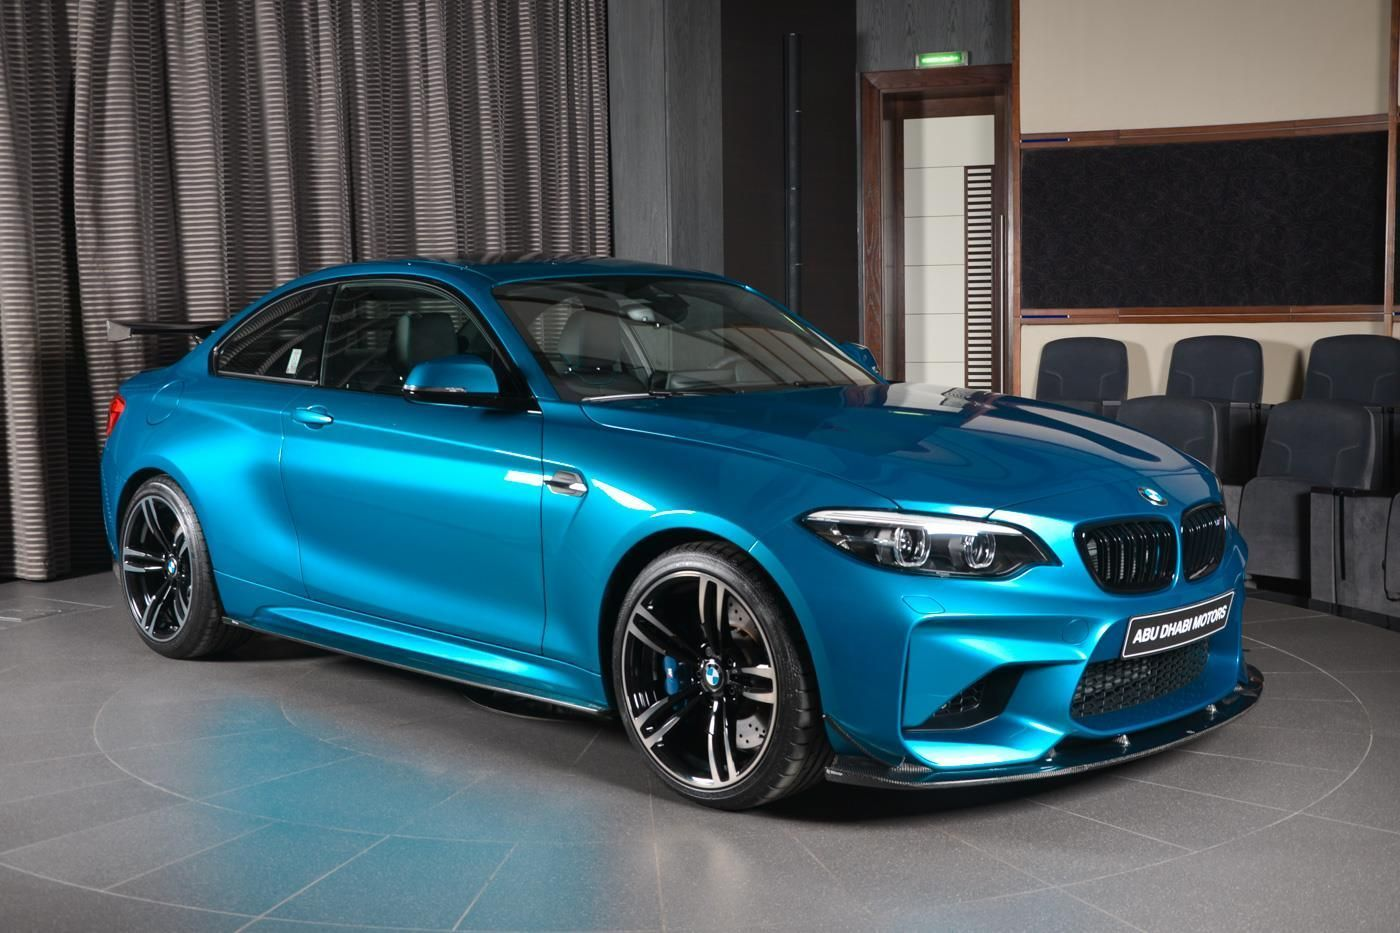 Bmw M2 Looks The Part With Bolder Aero Kit In 2020 Bmw M2 Bmw Luxury Cars